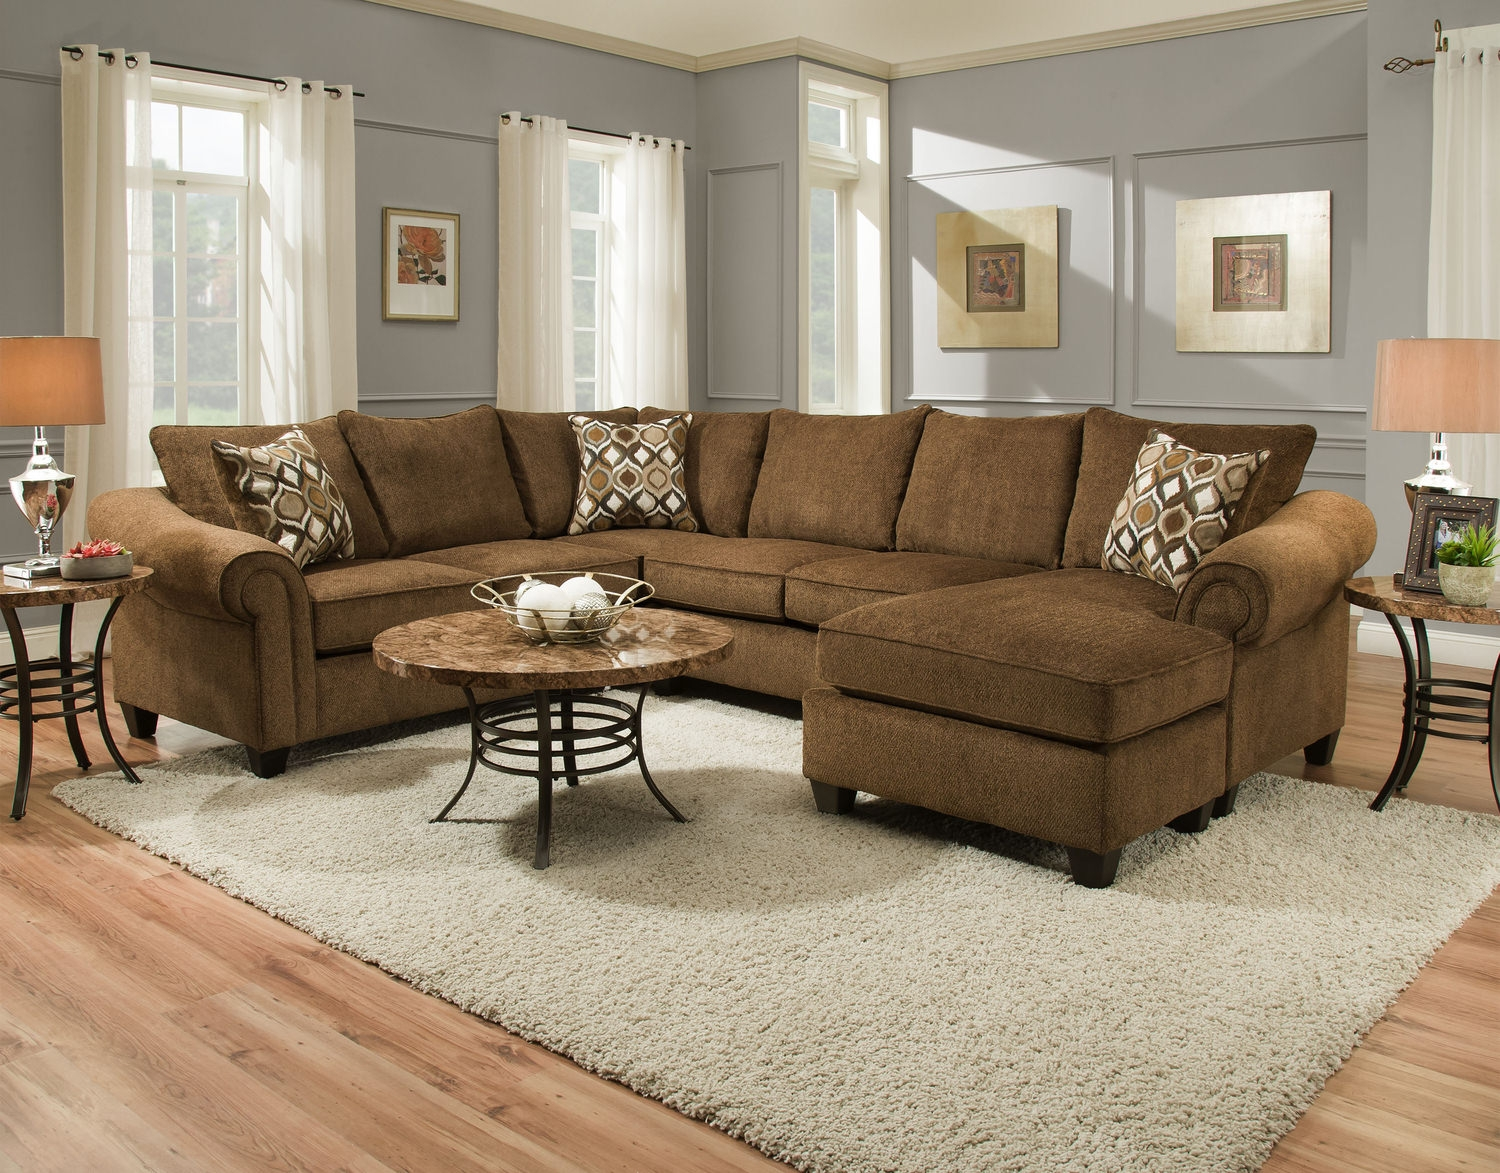 Sectional Sofas Living Room Seating Hom Furniture Inside 10 Piece Sectional Sofa (View 15 of 15)